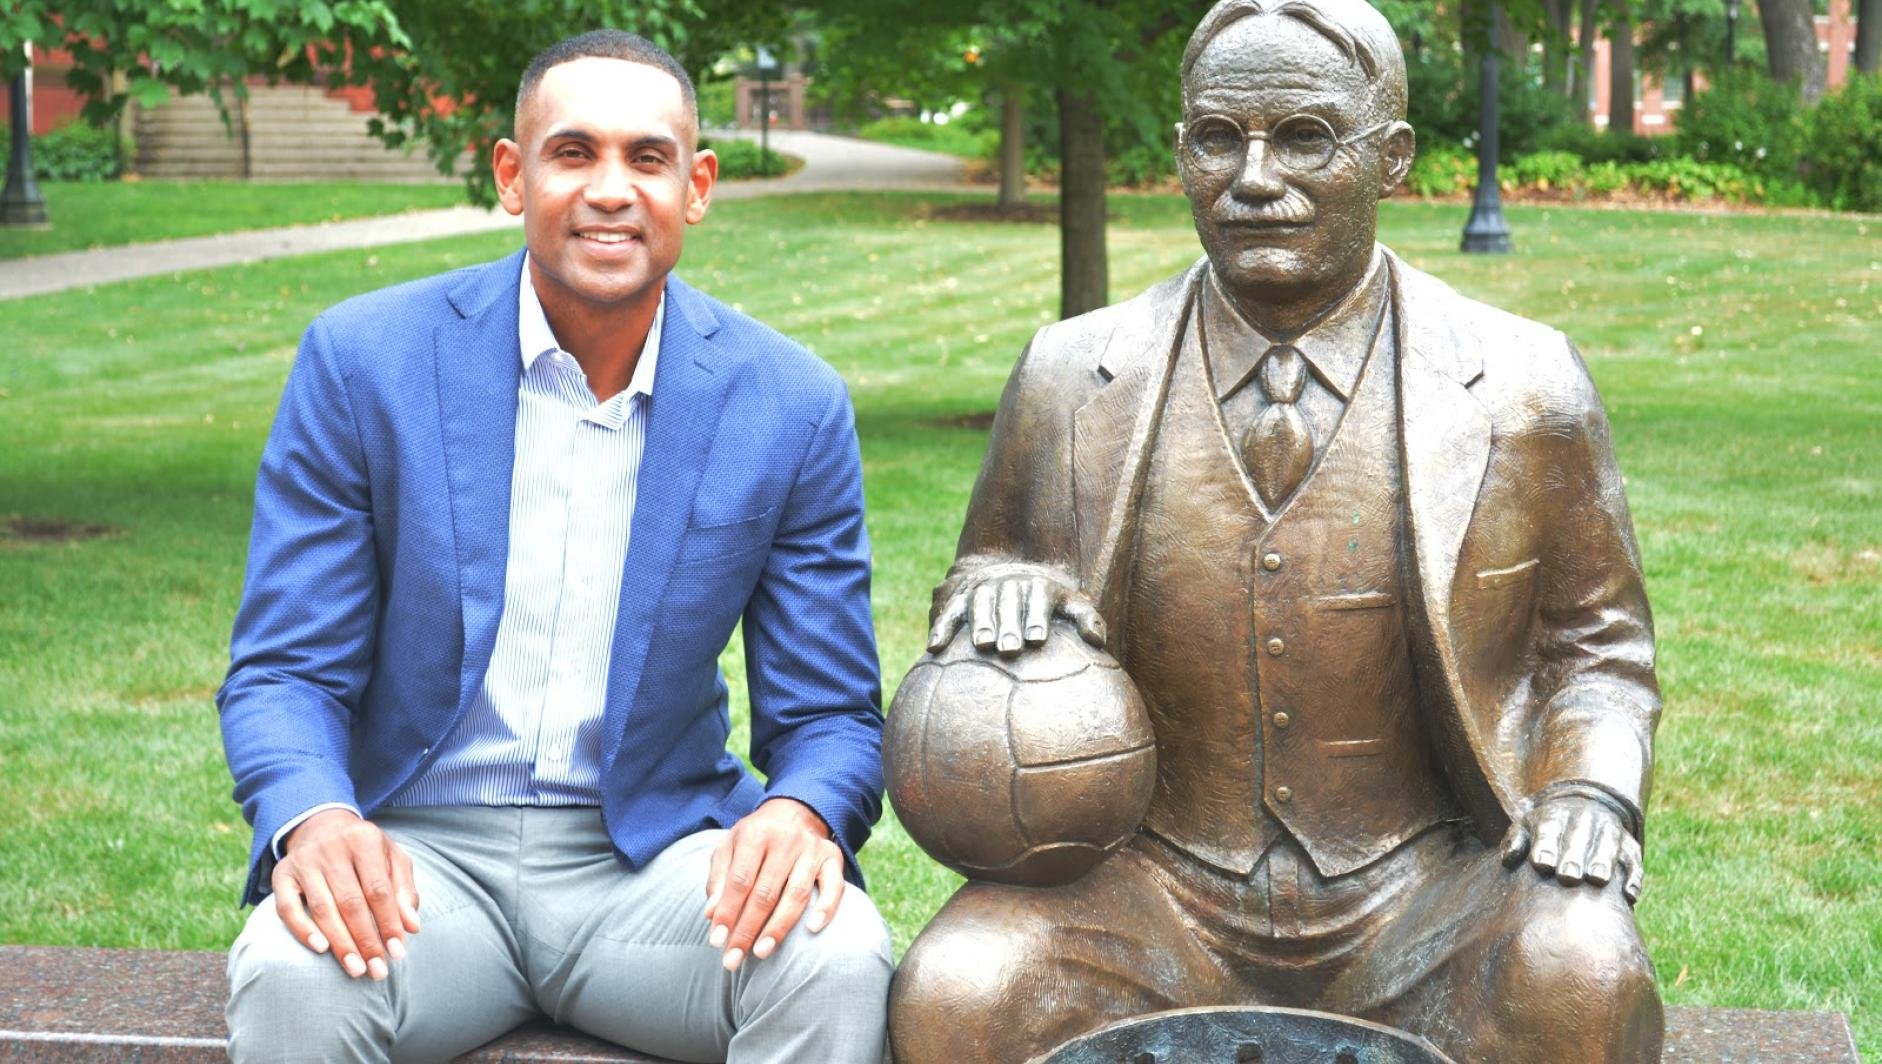 Grant Hill sitting next to the Naismith Statue